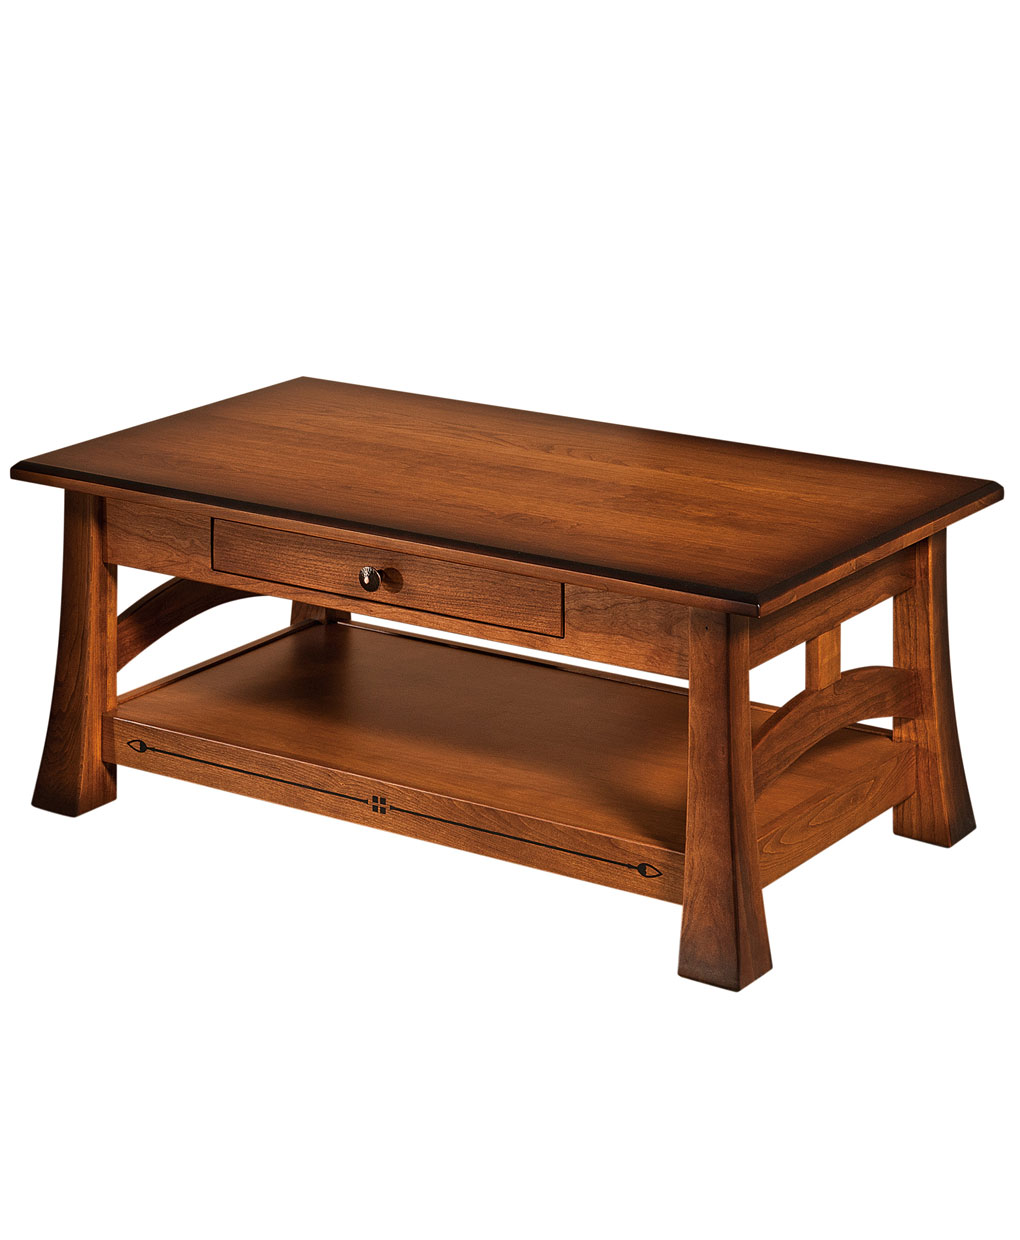 Captivating Brady Amish Coffee Table